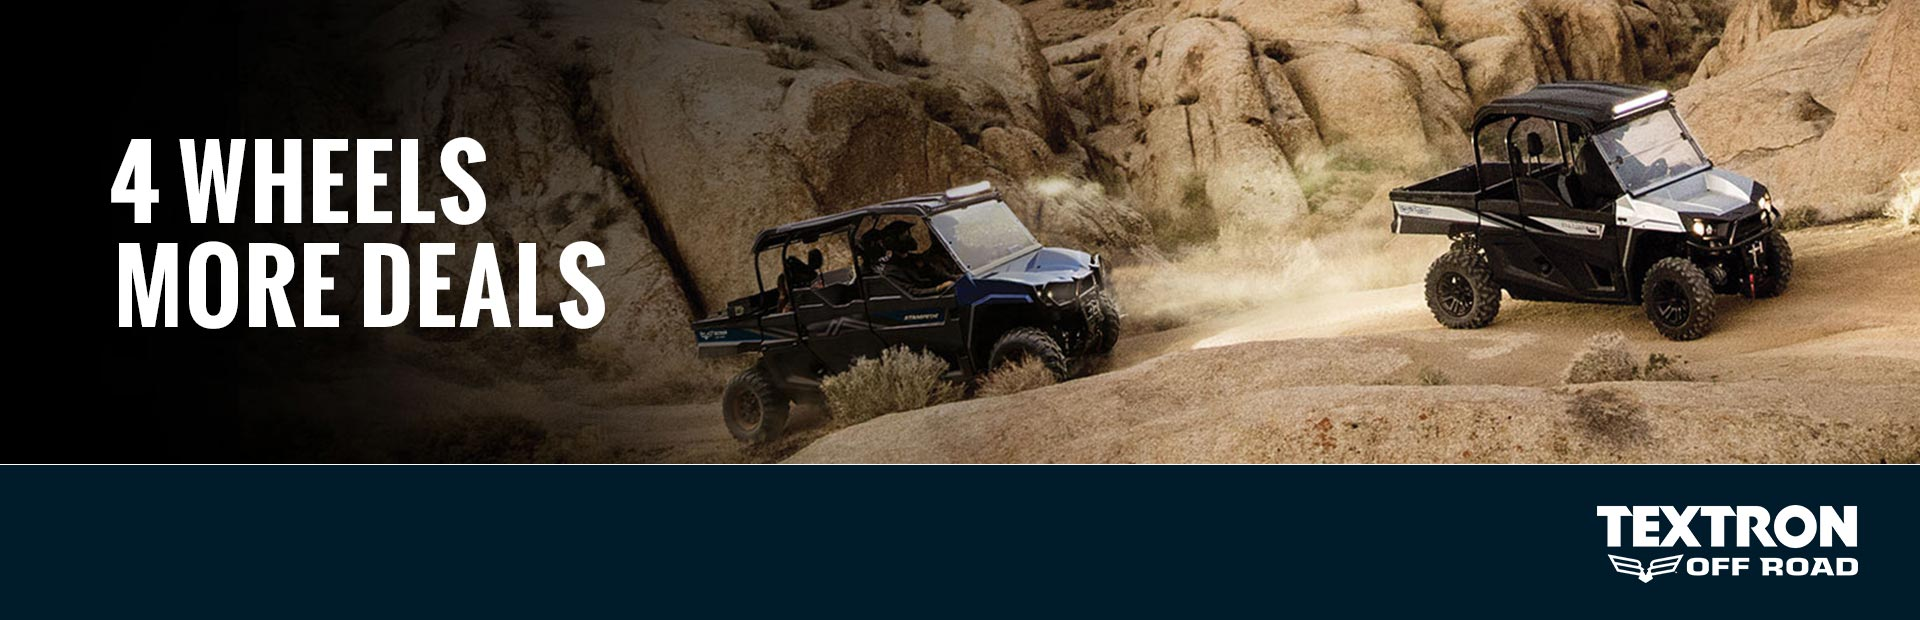 Textron Off Road: 4 Wheels More Deals